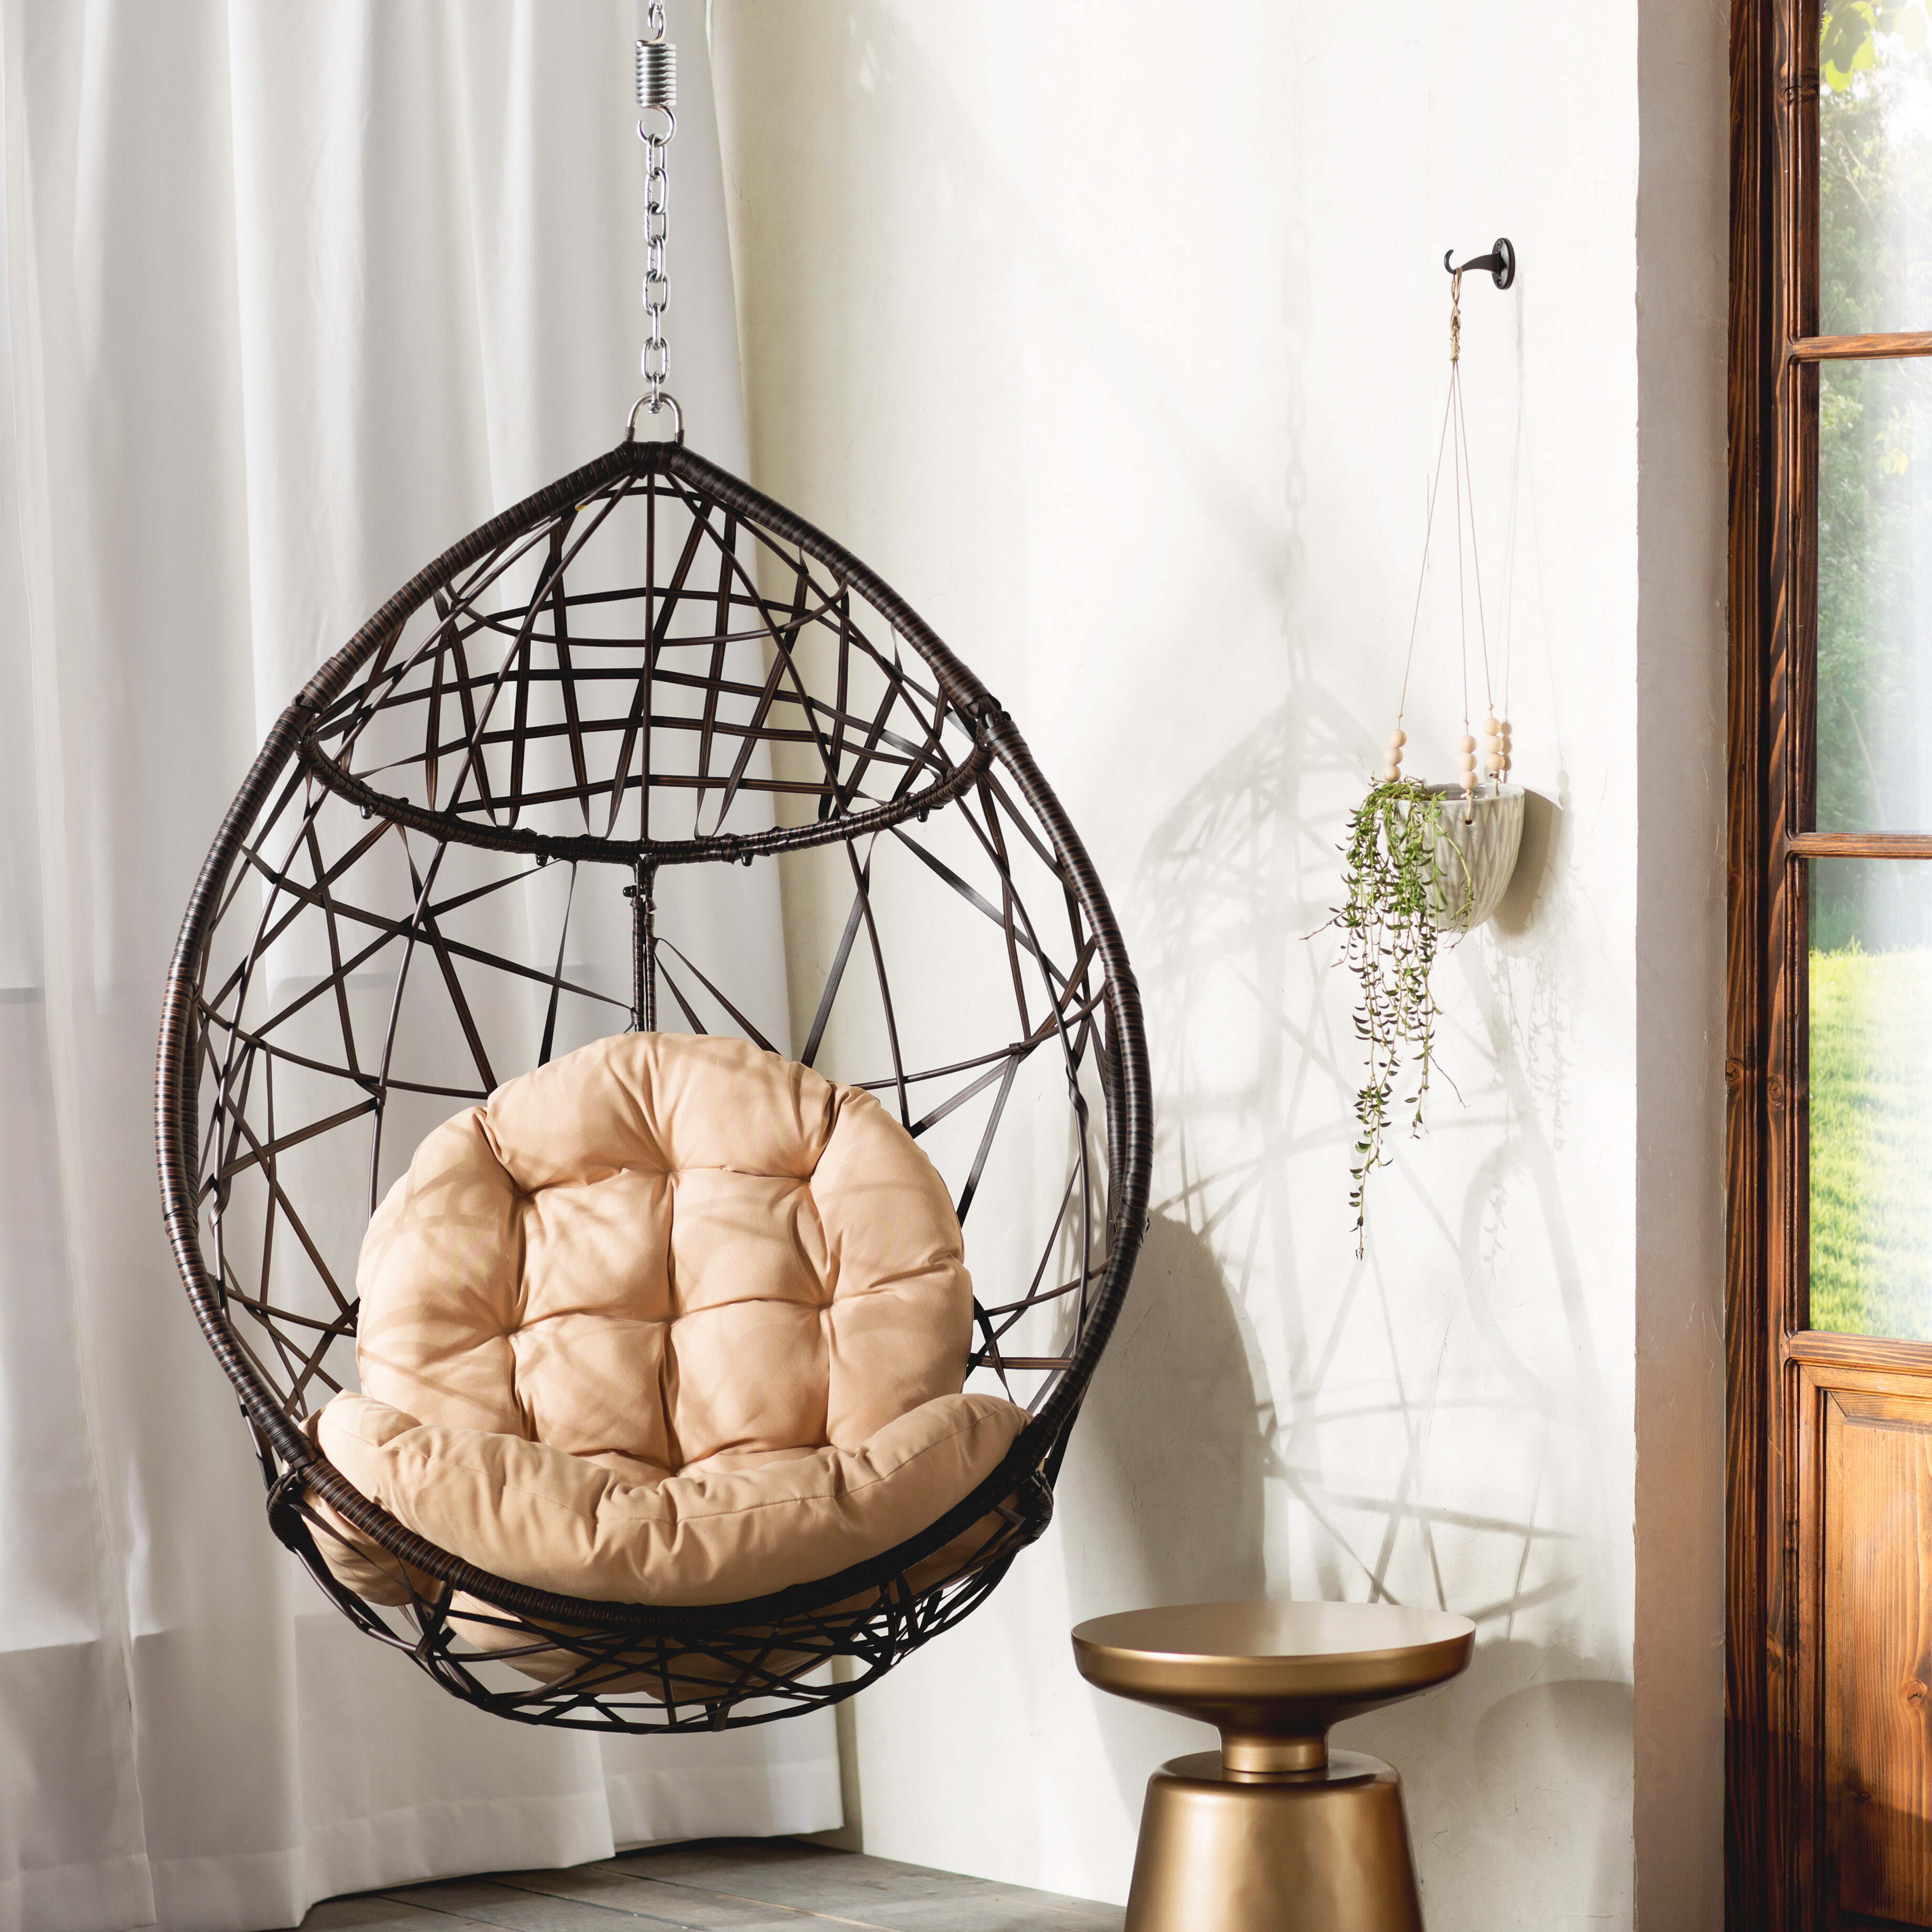 Mistana Destiny Tear Drop Swing Chair With Stand U0026 Reviews | Wayfair